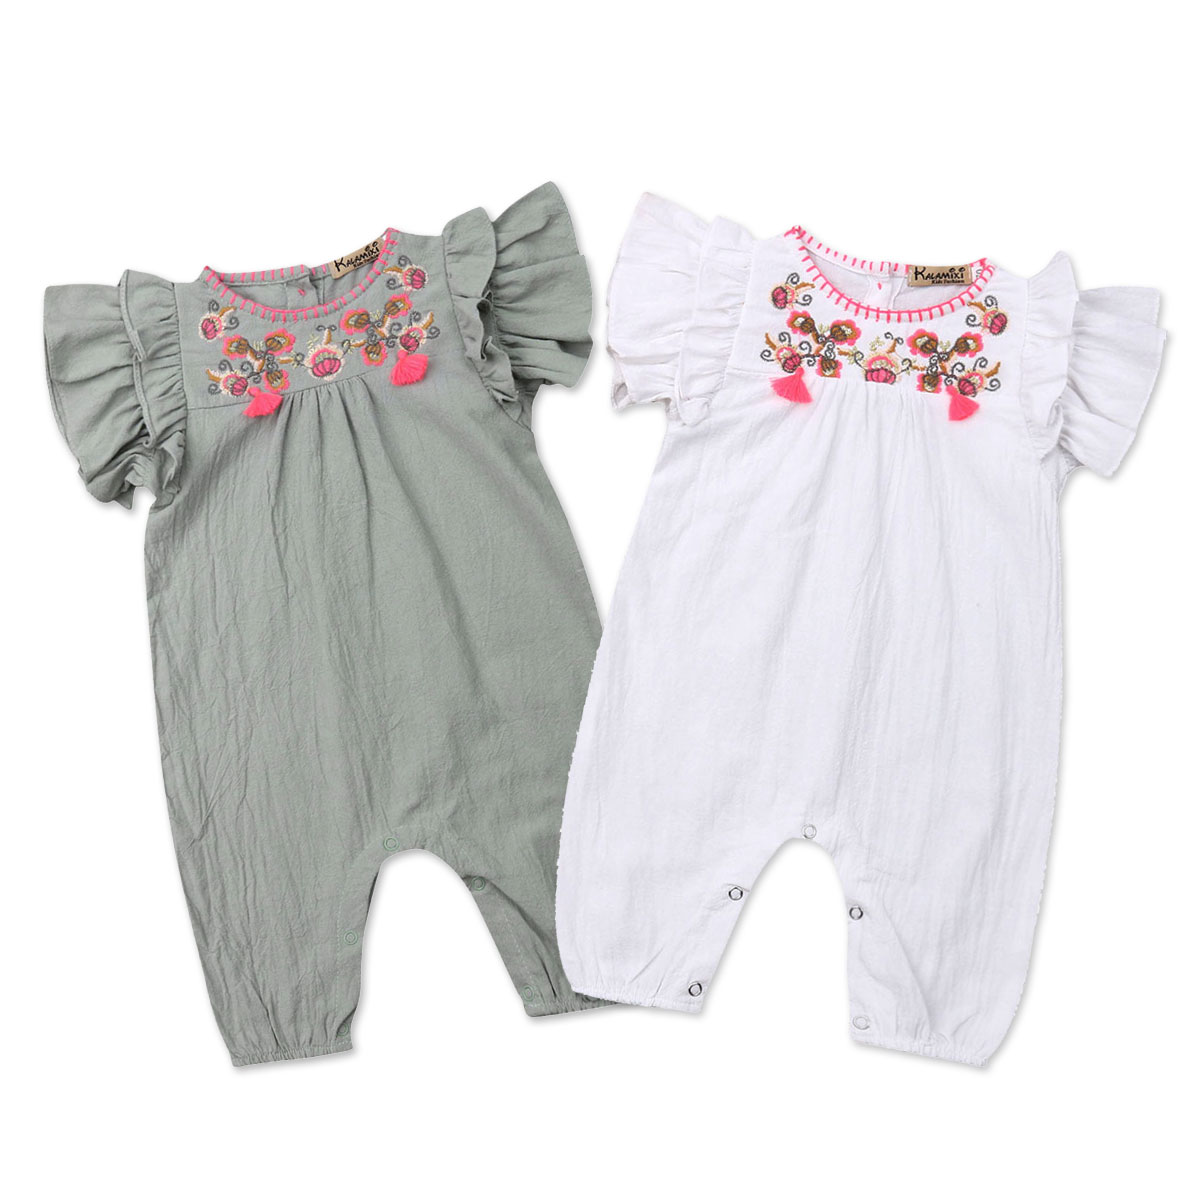 Summer Flower Baby Girls Clothes Newborn Infant Baby Ruffles Rompers Jumpsuit Playsuit Baby Girls Costumes